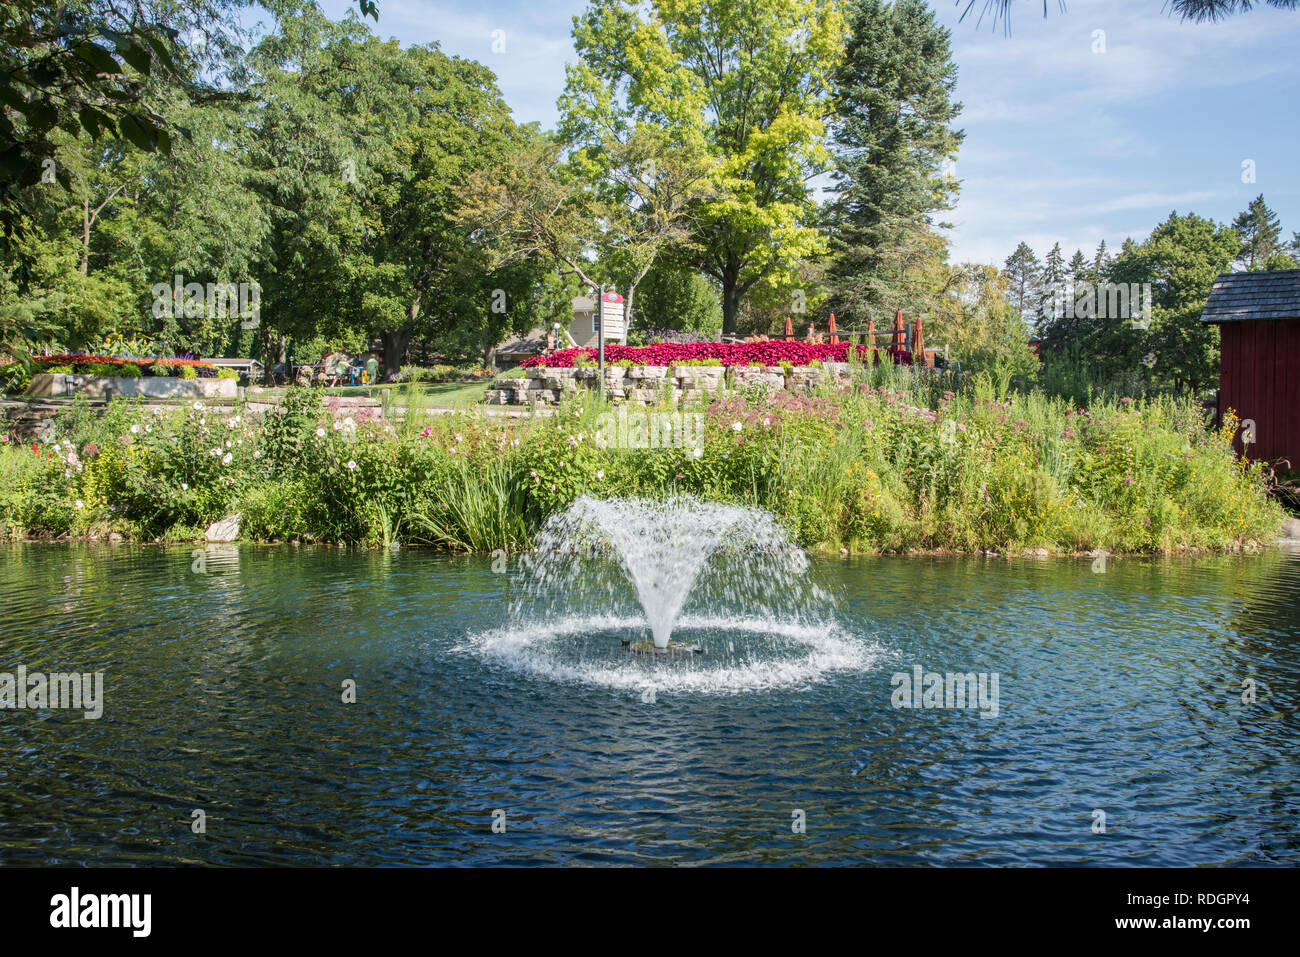 Aurora, Illinois, United States-August 9, 2017: Flowing water fountain in pond with native grasses and tourists at Blackberry Farm in Aurora, Illinois - Stock Image